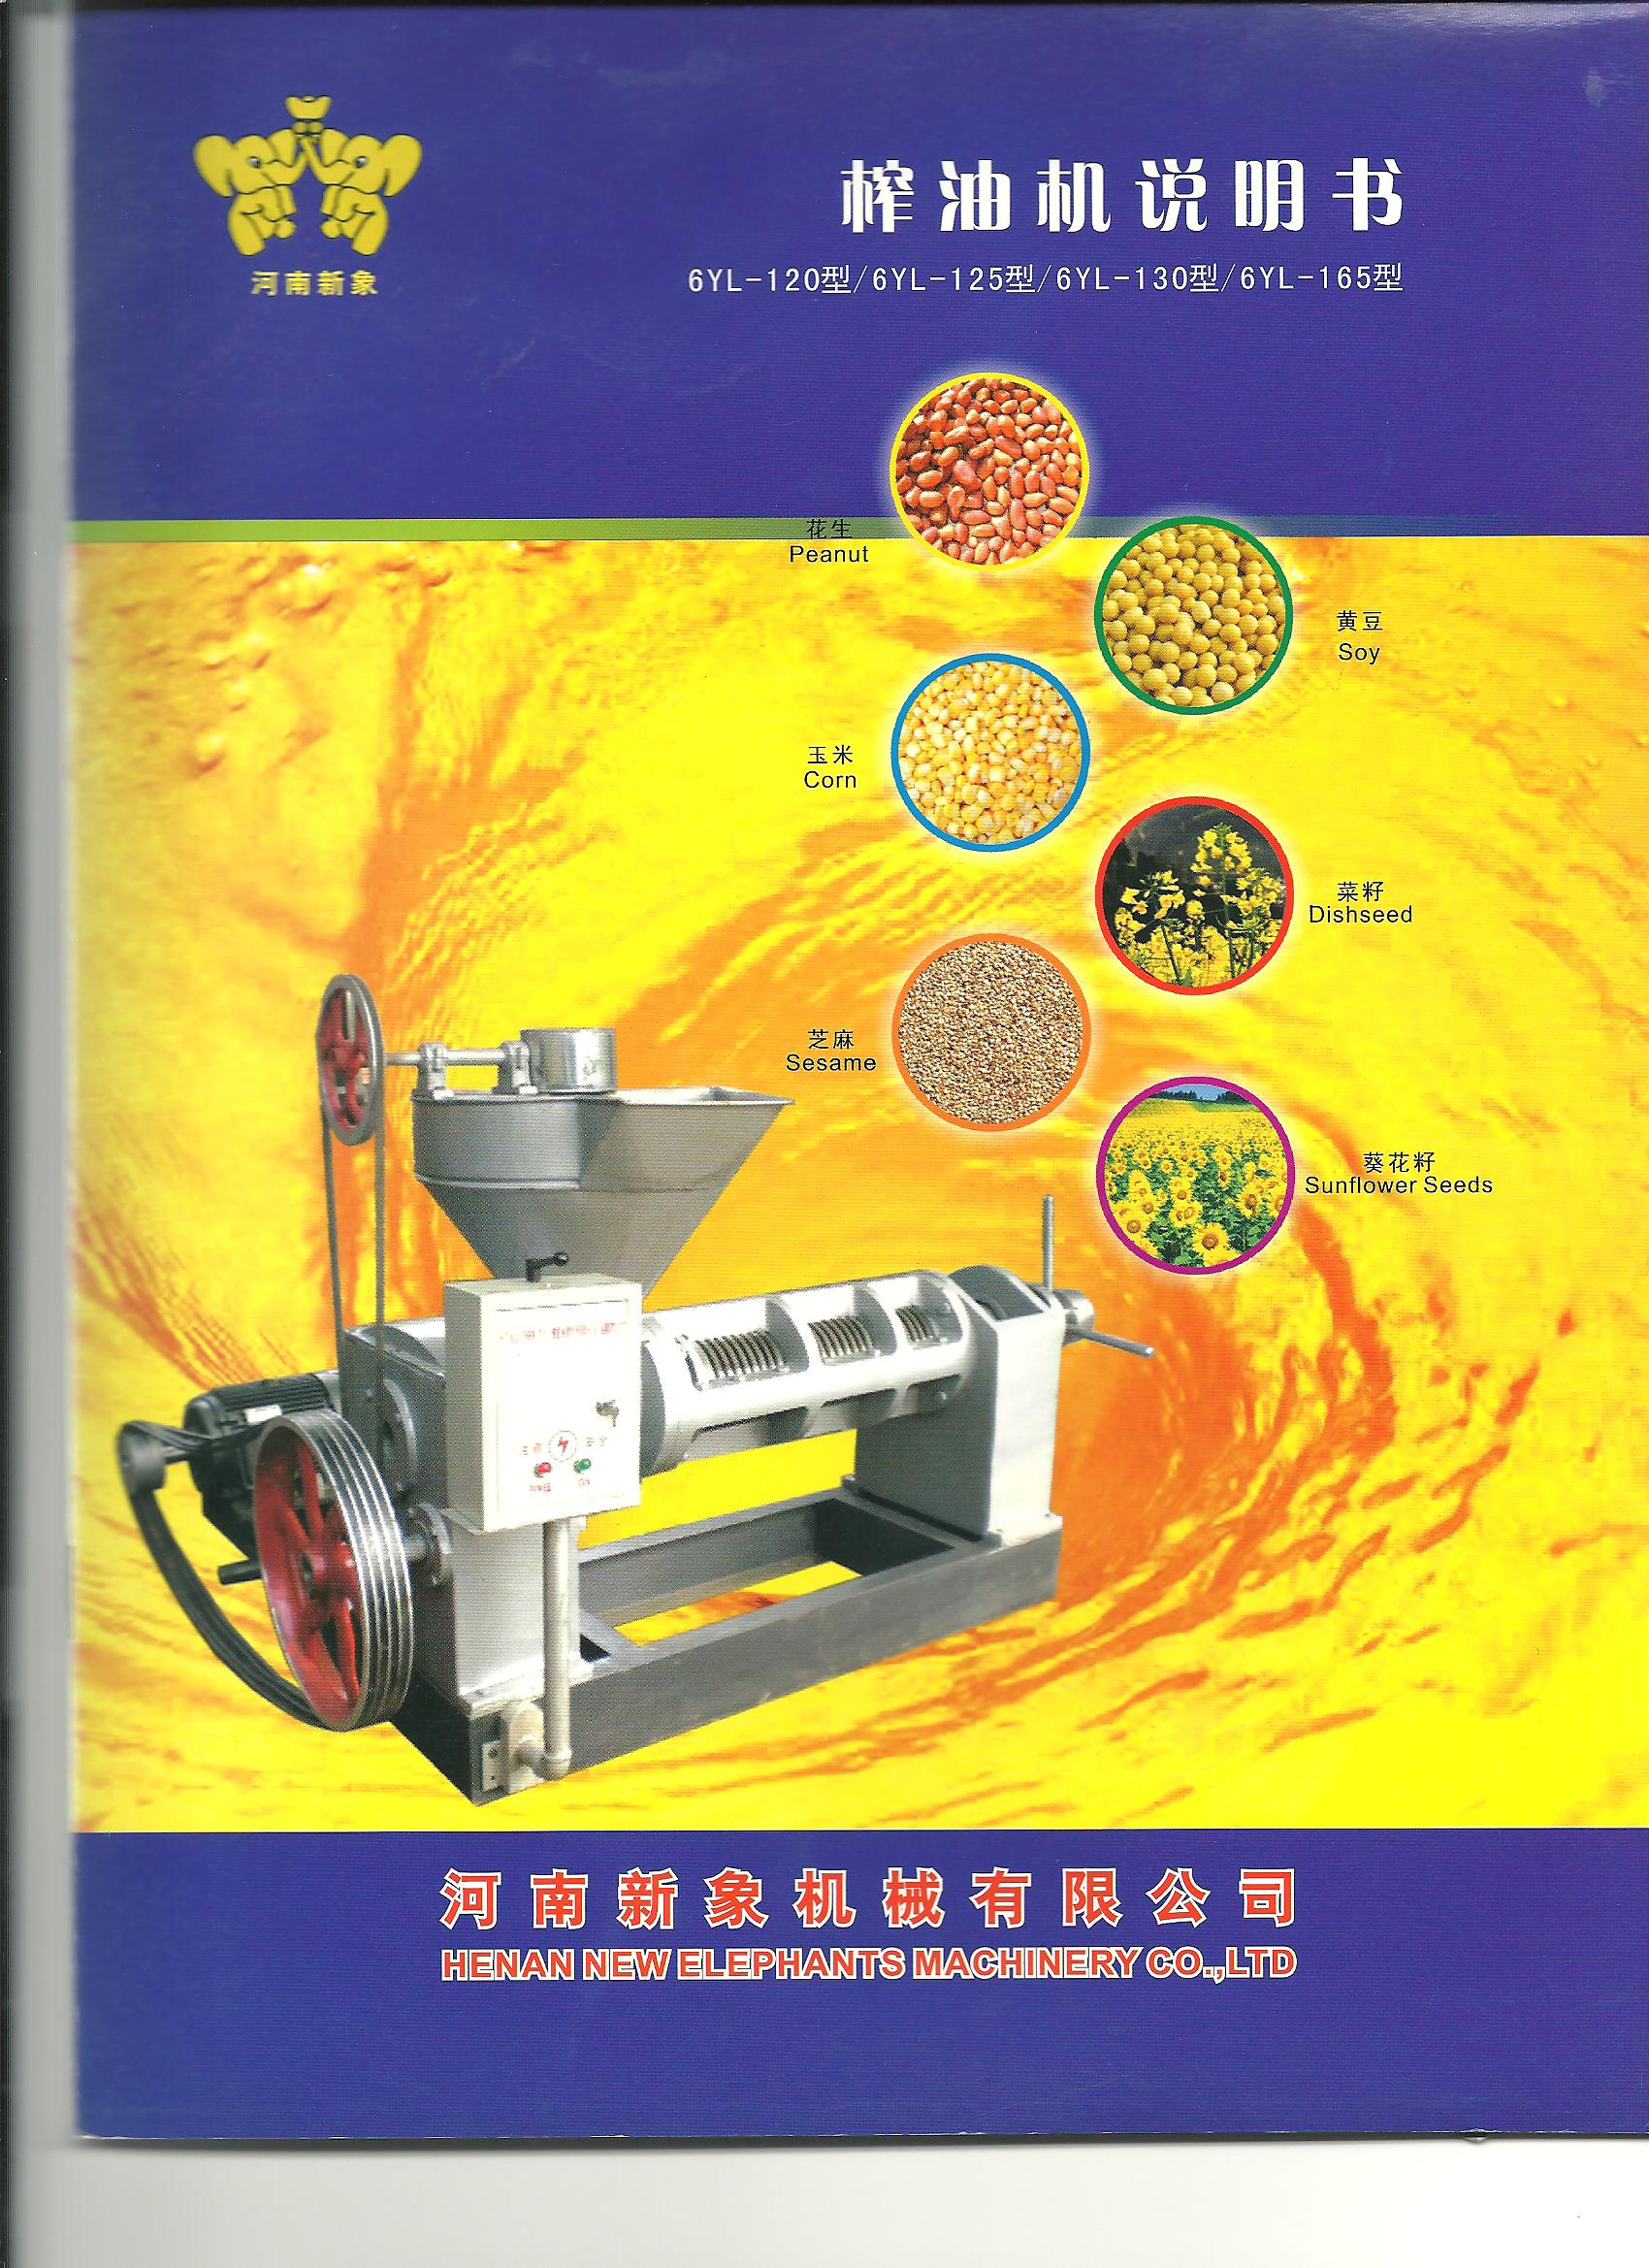 manual of oil press 6yl-165